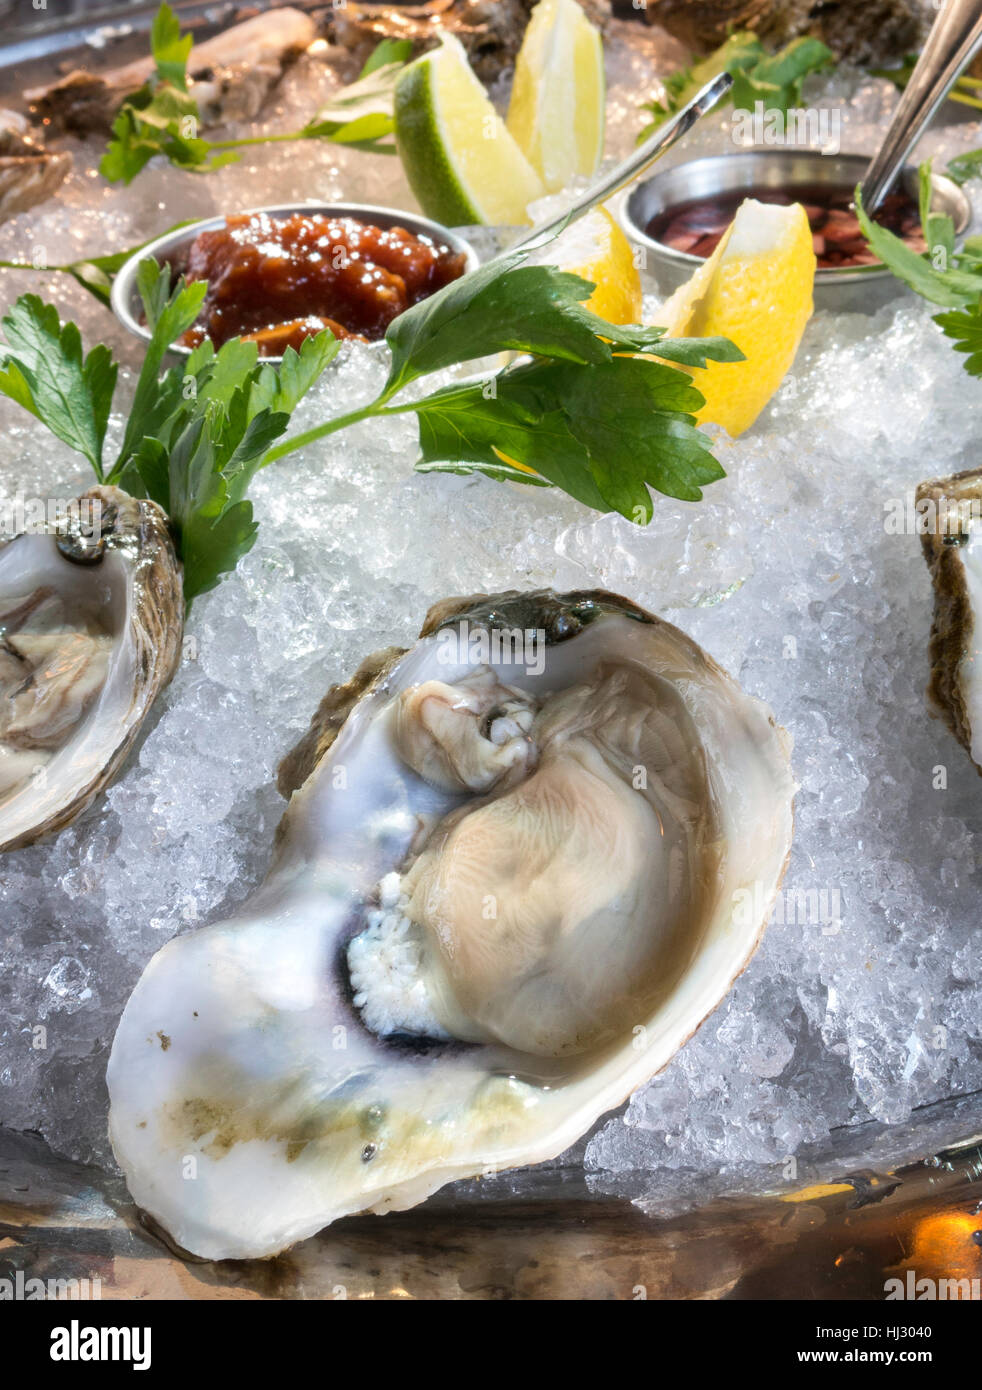 Raw Oysters on the Halfshell, Gourmet Restaurant Dining, USA - Stock Image